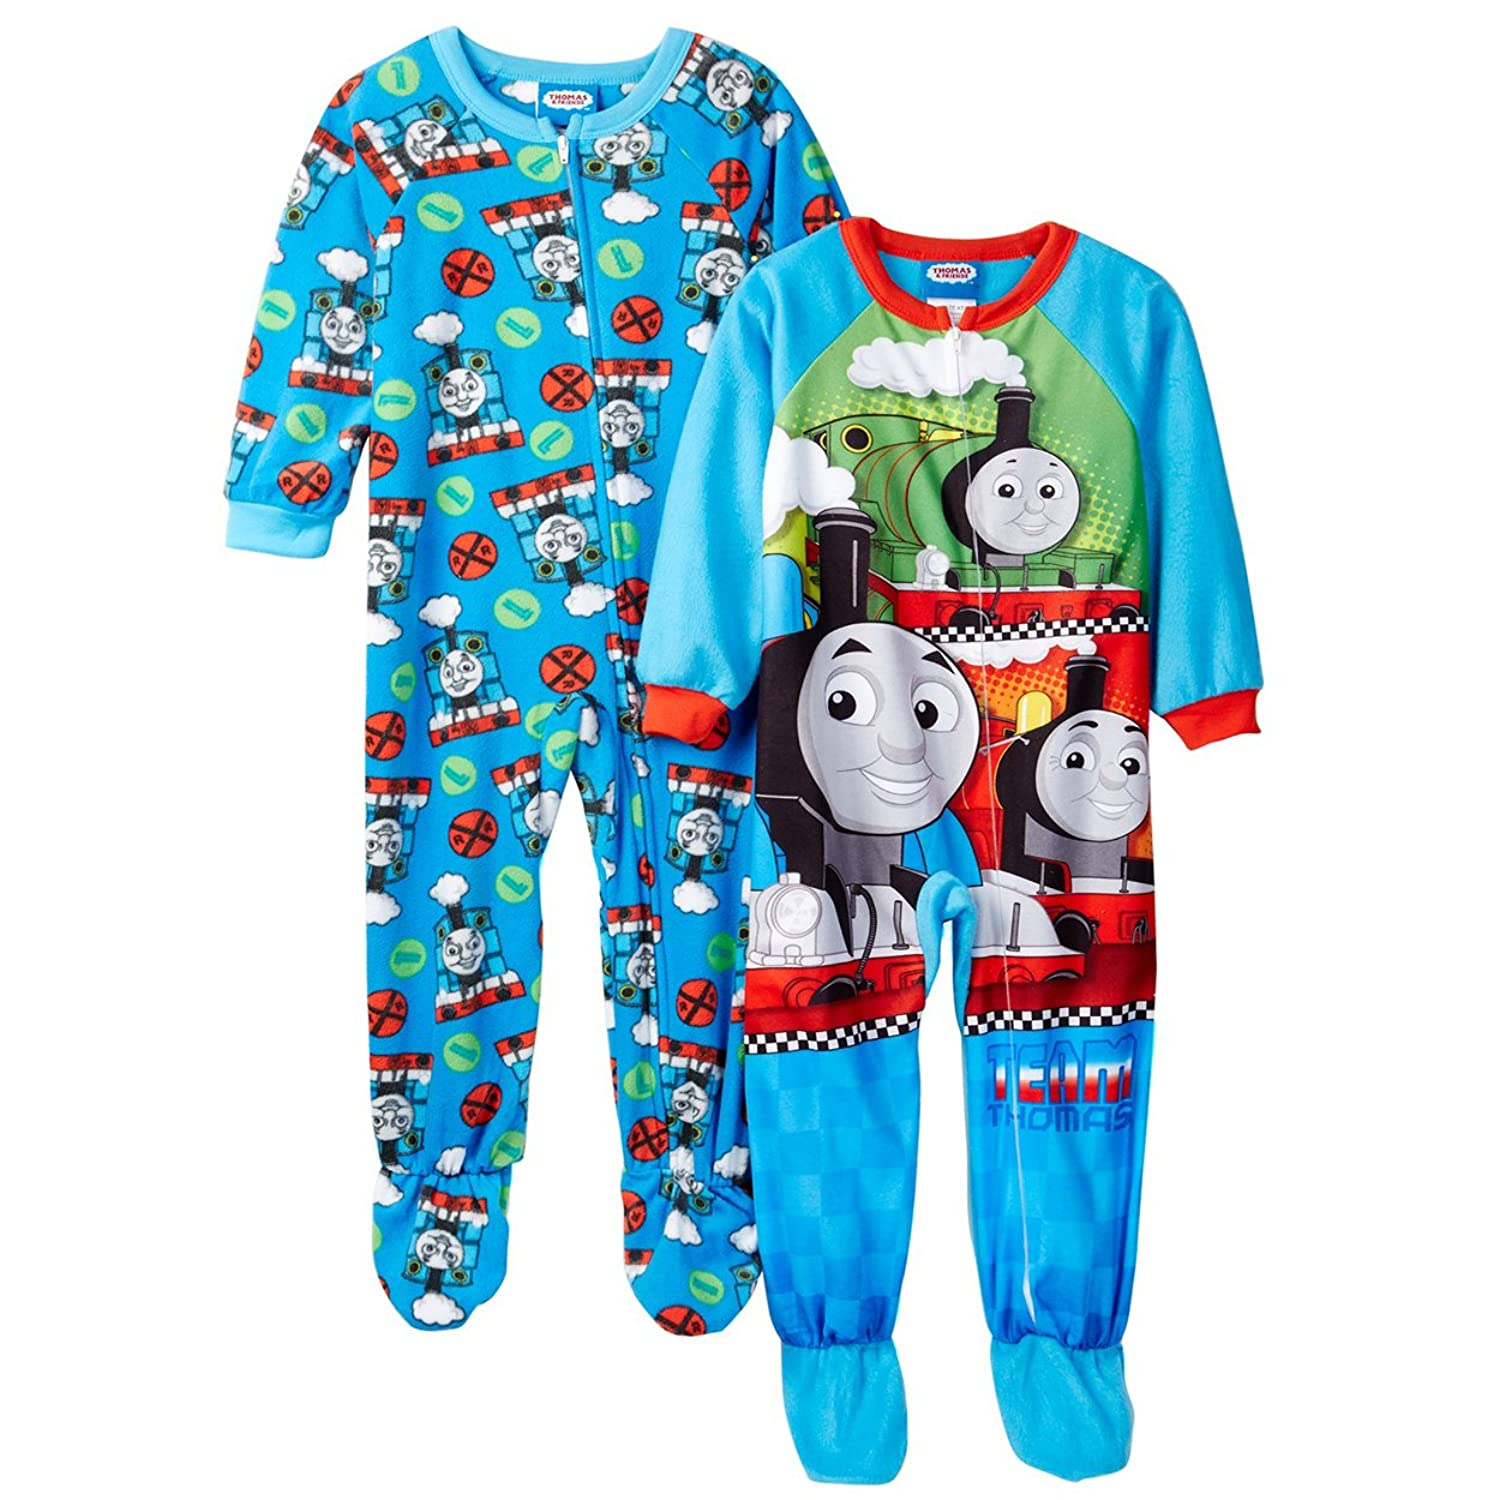 boy s blanket sleepers com thomas and friends boys 2 pack blanket sleeper pajamas toddler little kid